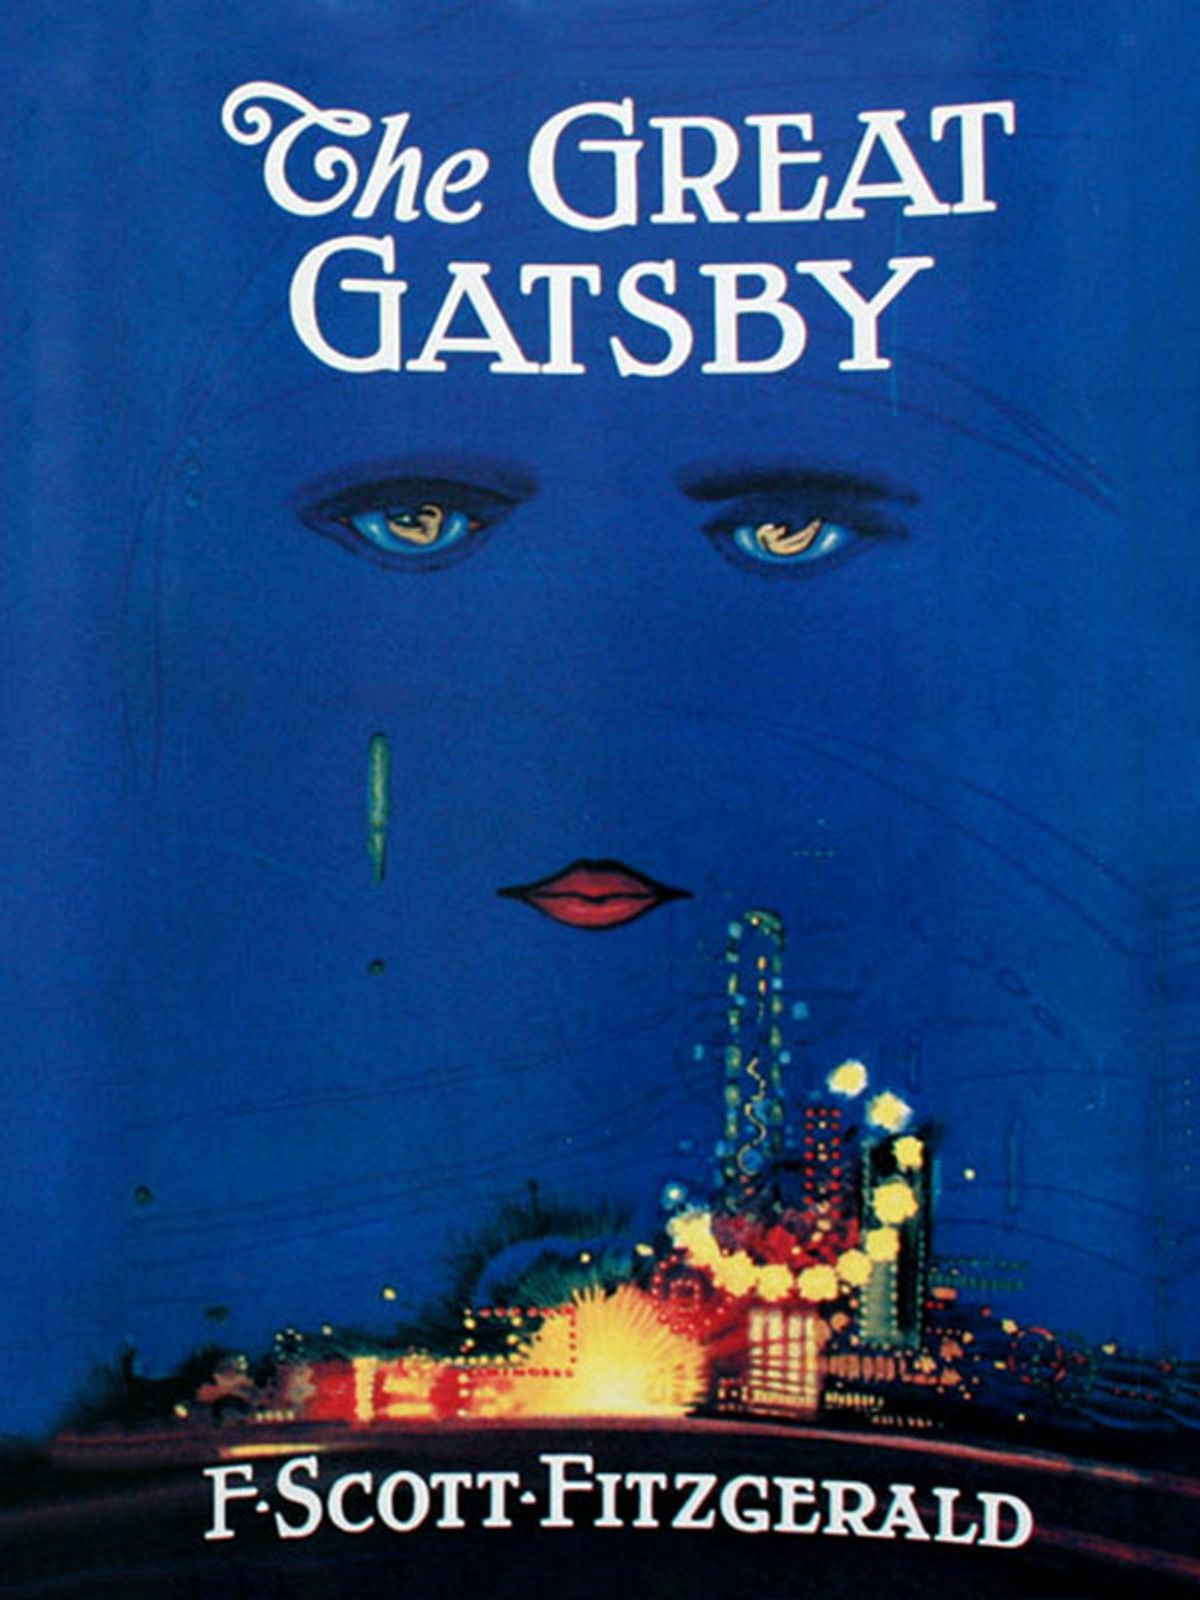 the american dream of reaching its illusionary goals in the great gatsby by f scott fitzgerald A simple dream the great gatsby, a novel by f scott fitzgerald, is about the american dream and the downfall of those who attempt to capture its illusionary goals this is a common theme central to many novels this dream has varying significances for different people but in the great gatsby, for jay, the dream is through wealth and power.